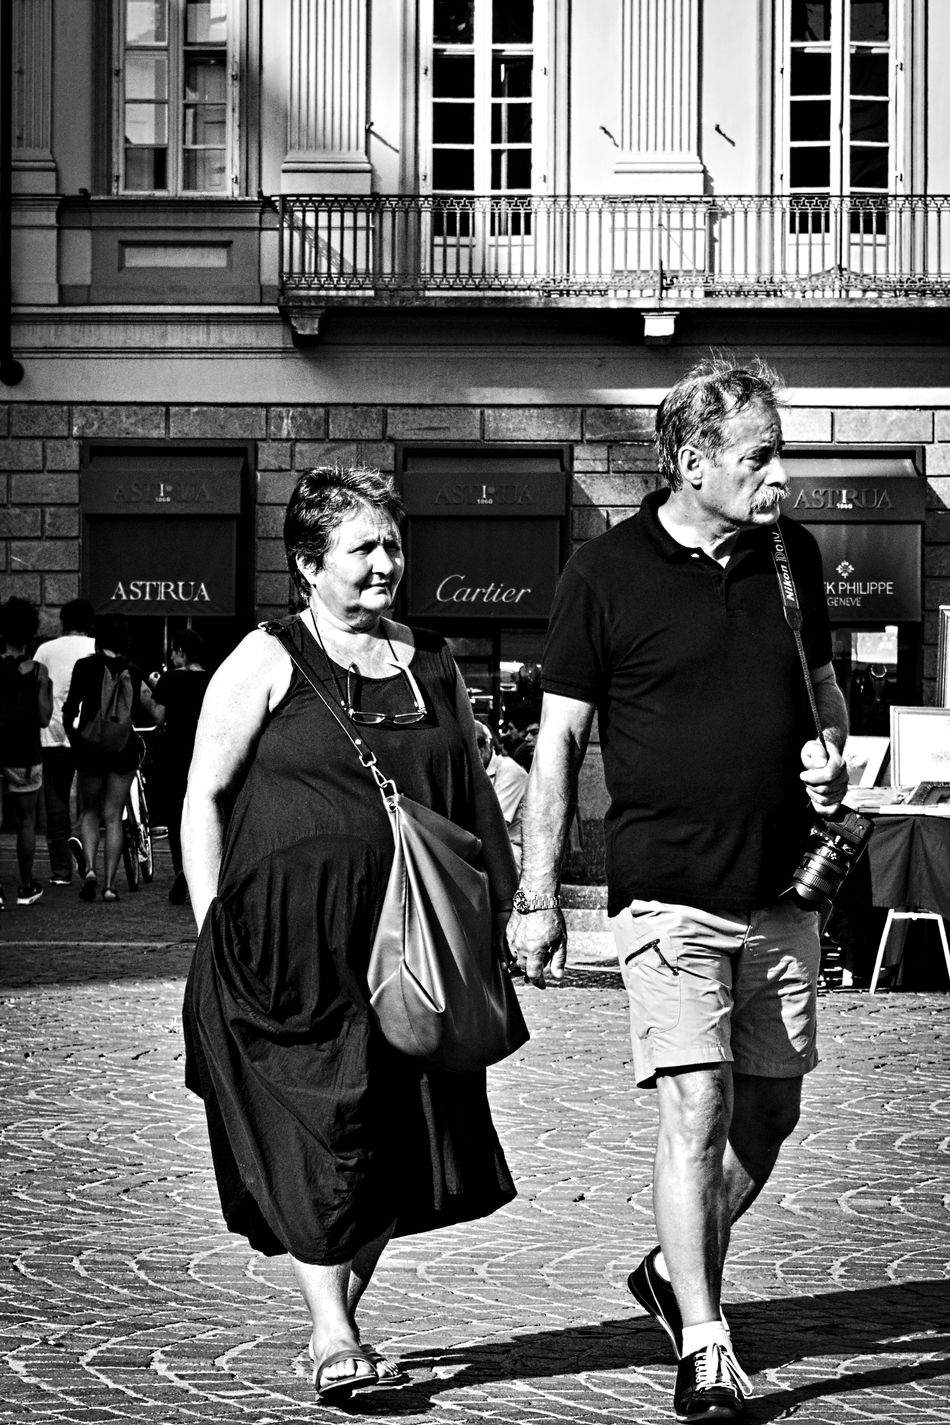 Everlasting love. Adult Black And White Black And White Photography Bnw City City Life Everlasting Love Lifestyles Love Marriage  married couple Outdoors People Person Real People Senior Adult Street Street Life Street Photography Togetherness Torino Italy Turin Turin Italy Walking People Monochrome Photography